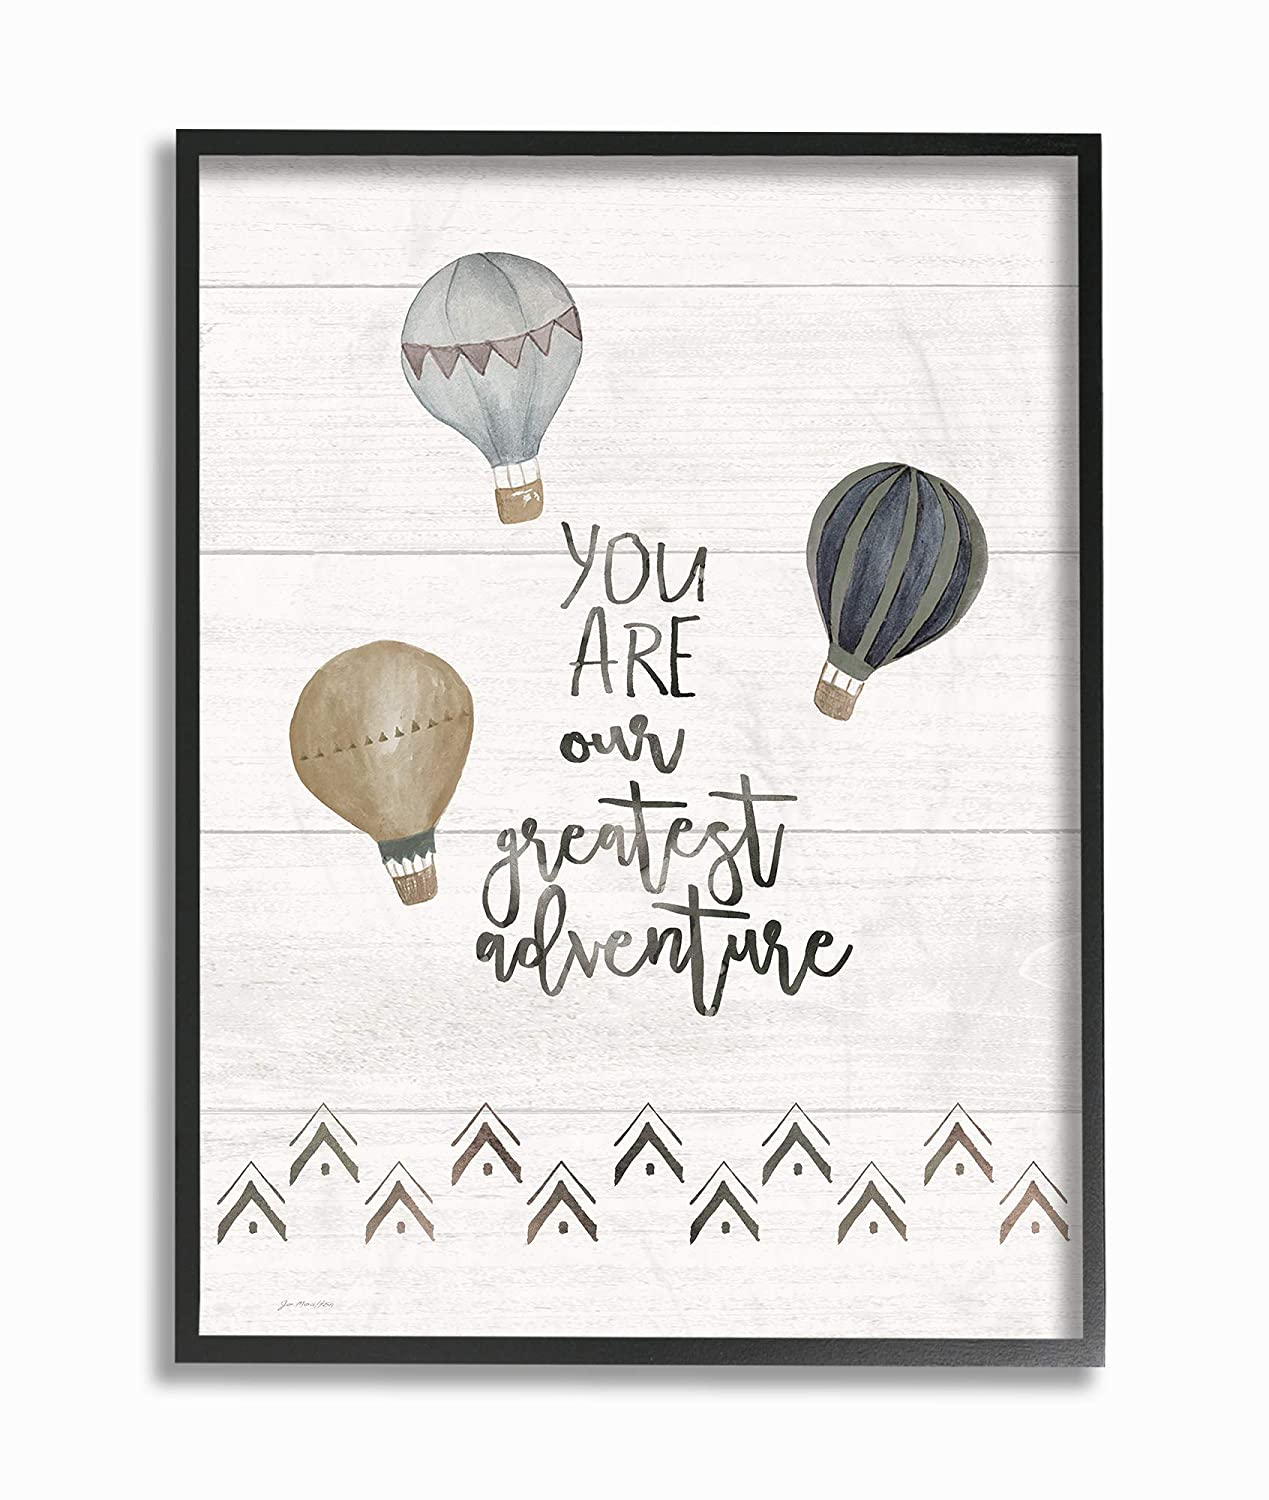 The Kids Room by Stupell Our Greatest Adventure Neutral Grey Hot Air Balloons Stretched Canvas Wall Art 24 x 30 Multi-Color Stupell Industries brp-2348/_cn/_24x30